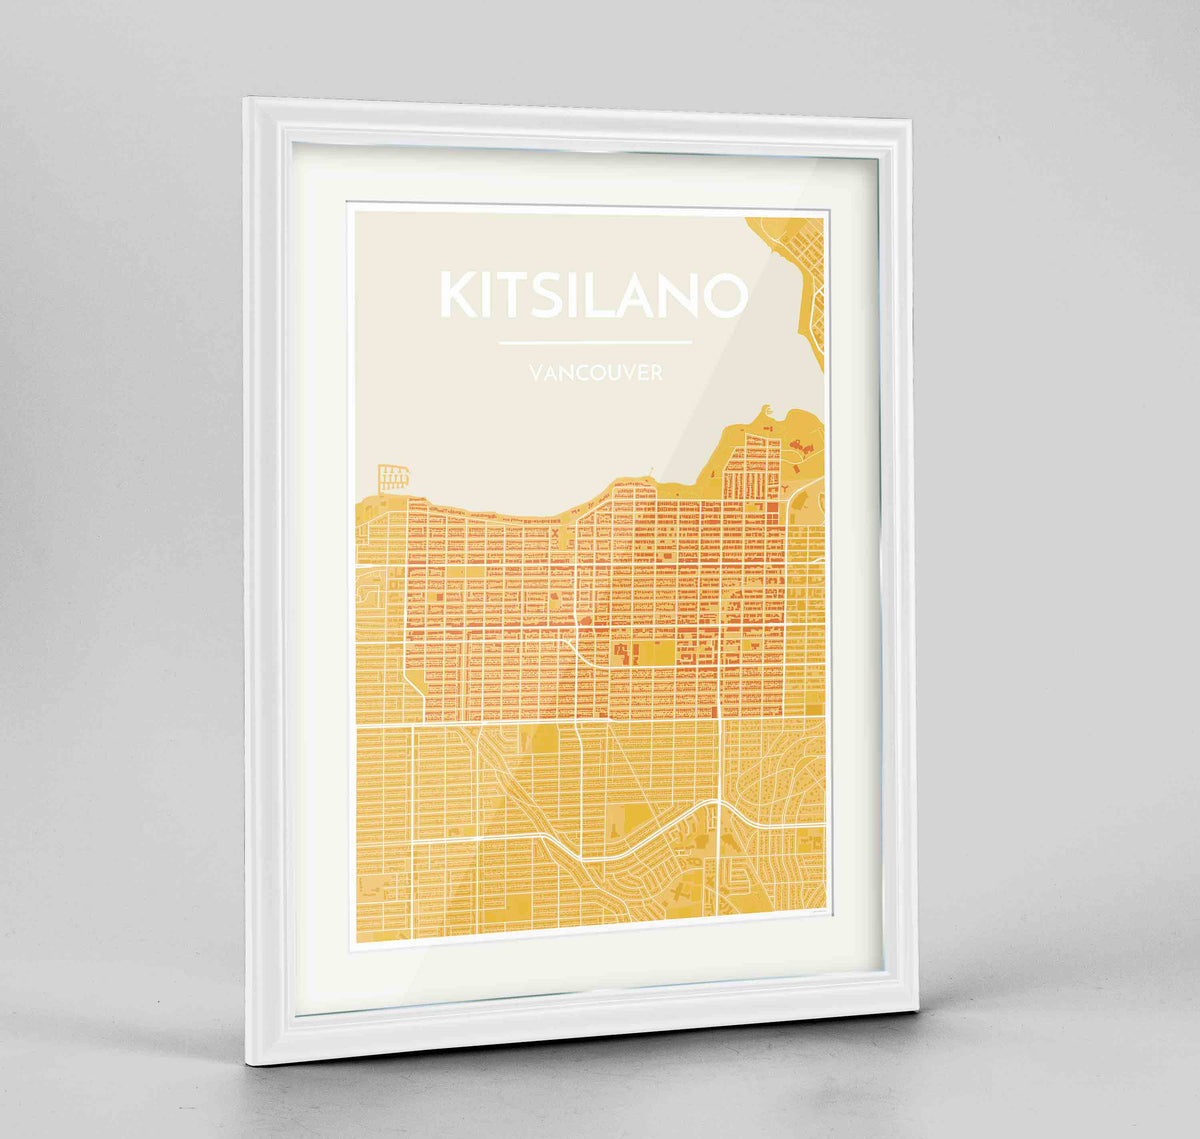 "Framed Kitsilano Vancouver Map Art Print 24x36"" Traditional White frame Point Two Design Group"